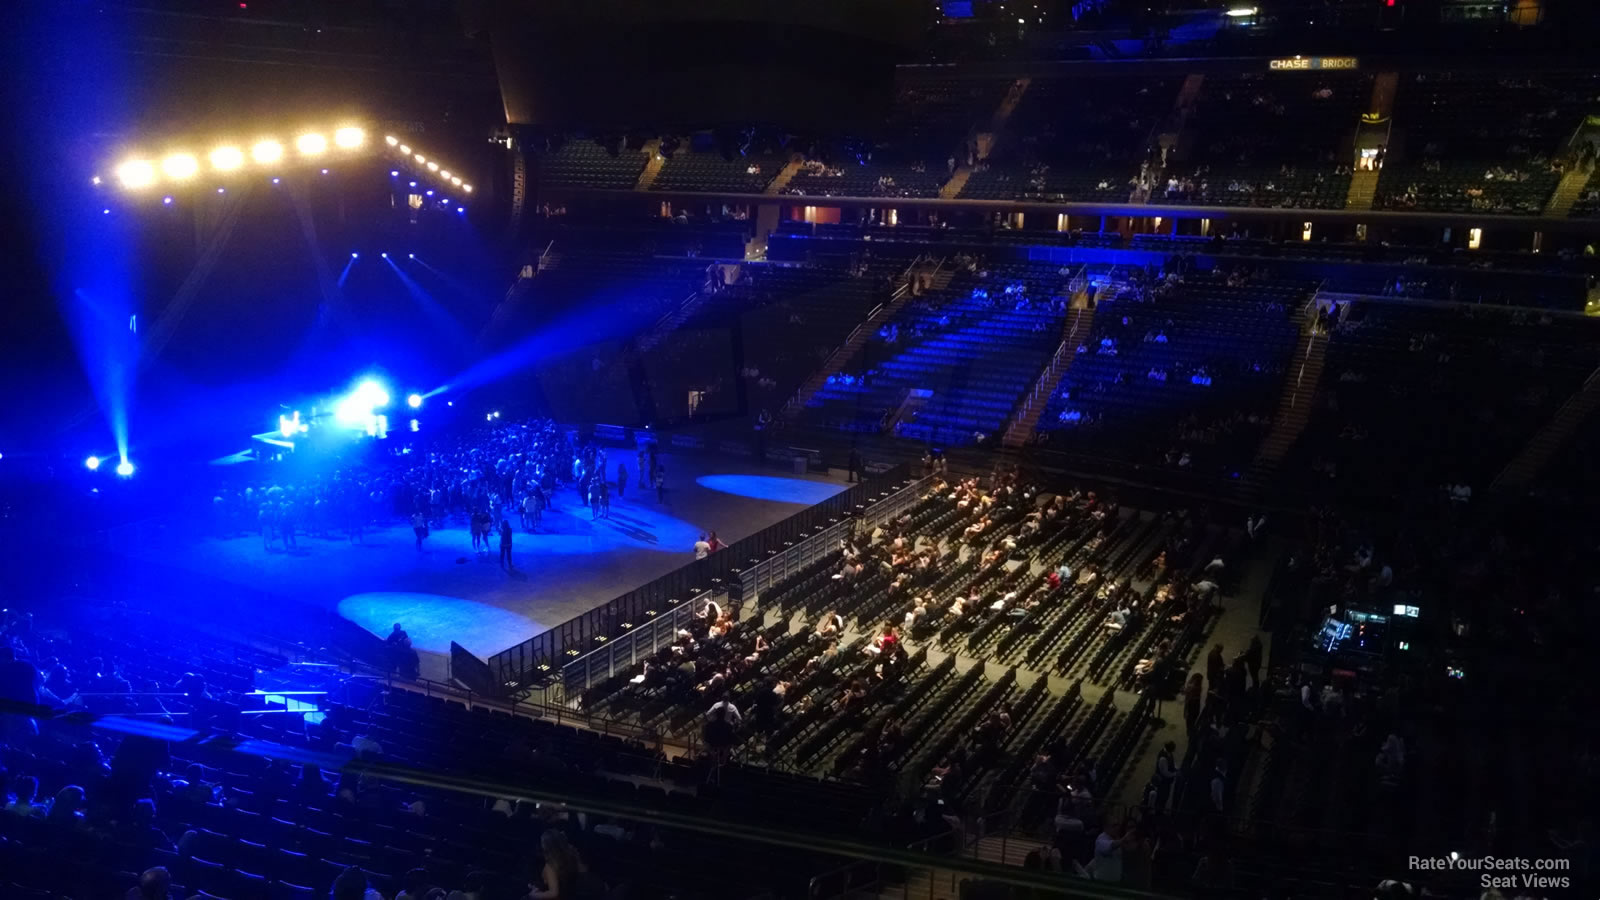 Madison square garden section 226 concert seating - Bruno mars tickets madison square garden ...